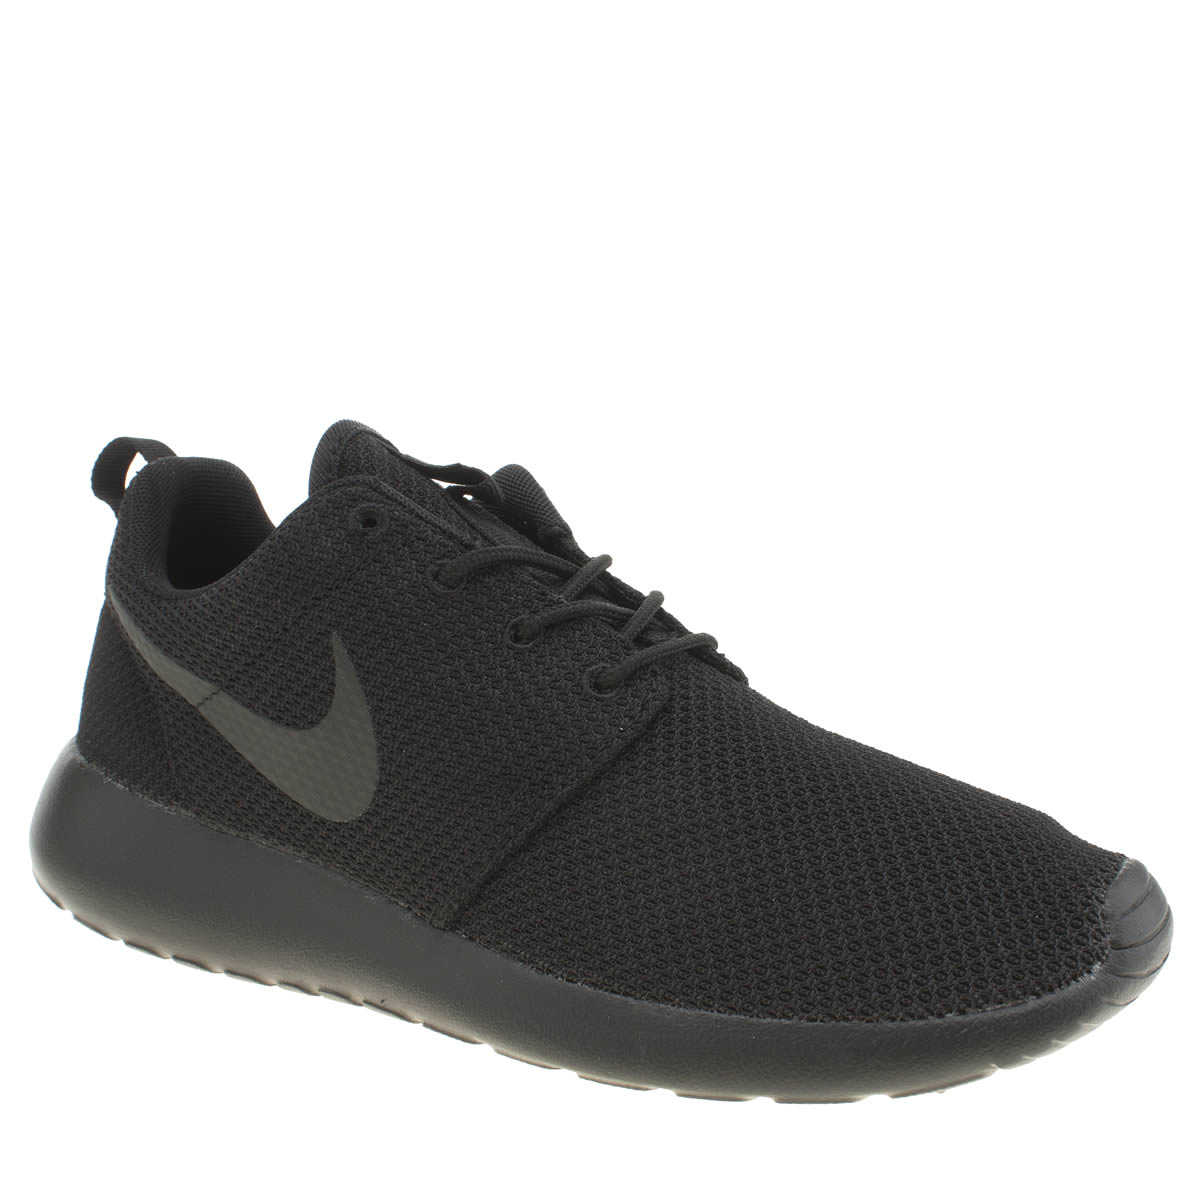 13ca26251532 Women Mens nike roshe one breeze casual shoes in calypso 77% Off ...